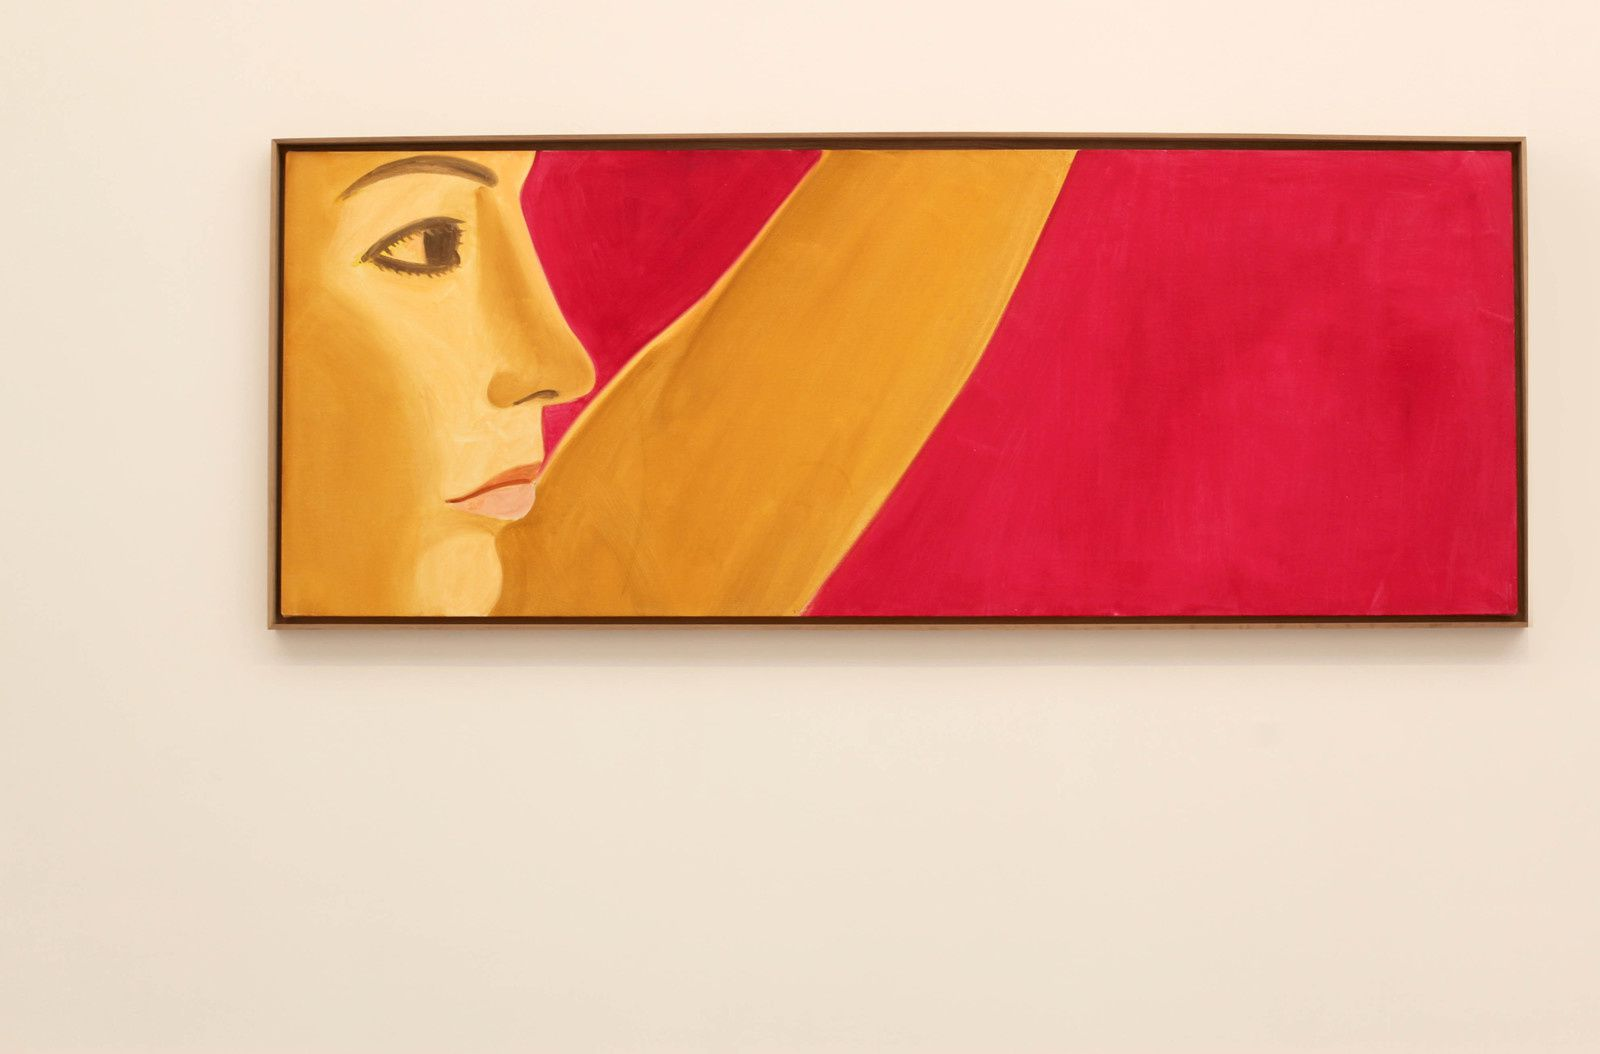 """Red Dancer 7"", 2018 de Alex KATZ - Courtesy Galerie Thaddaeus Ropac © Photo Éric Simon"